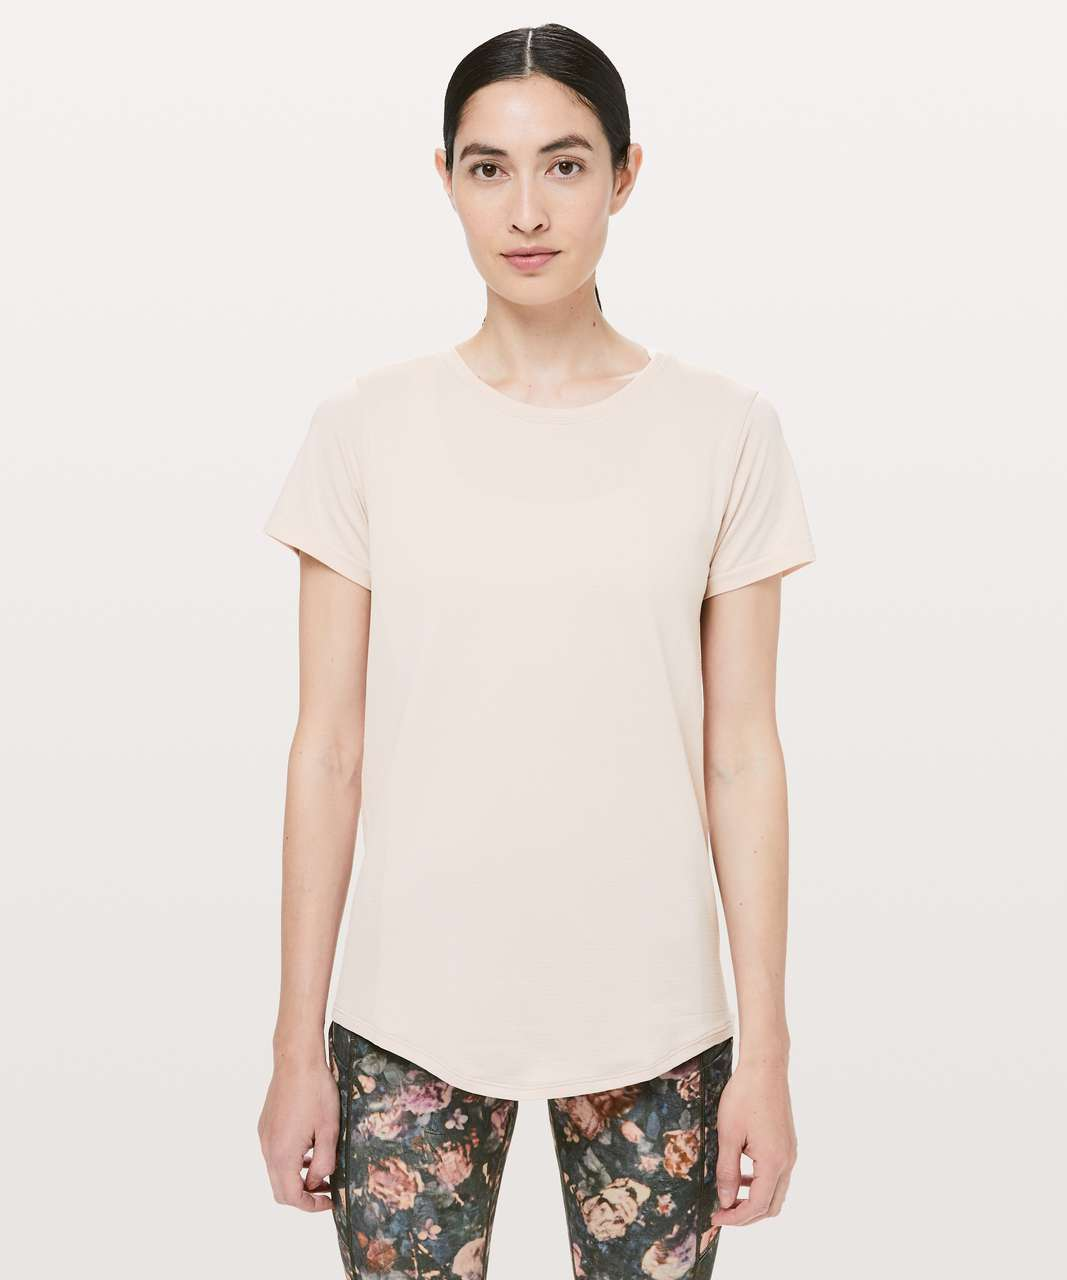 b74dece0e233b Lululemon Wait For Nothing Short Sleeve - Pink Bliss   White - lulu fanatics